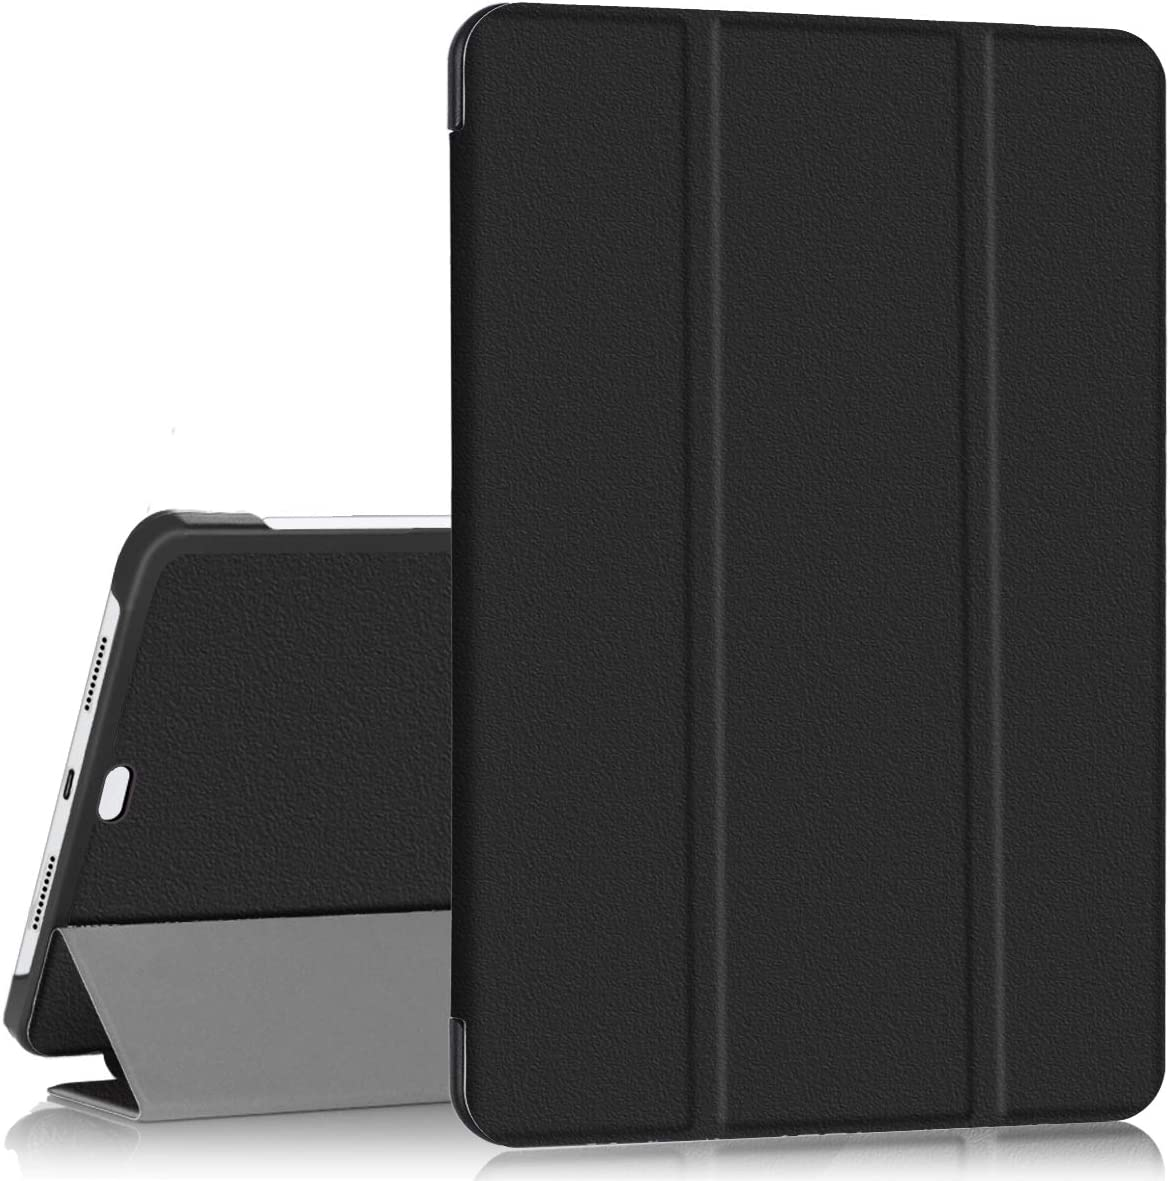 Smart Leather case for iPad pro 11